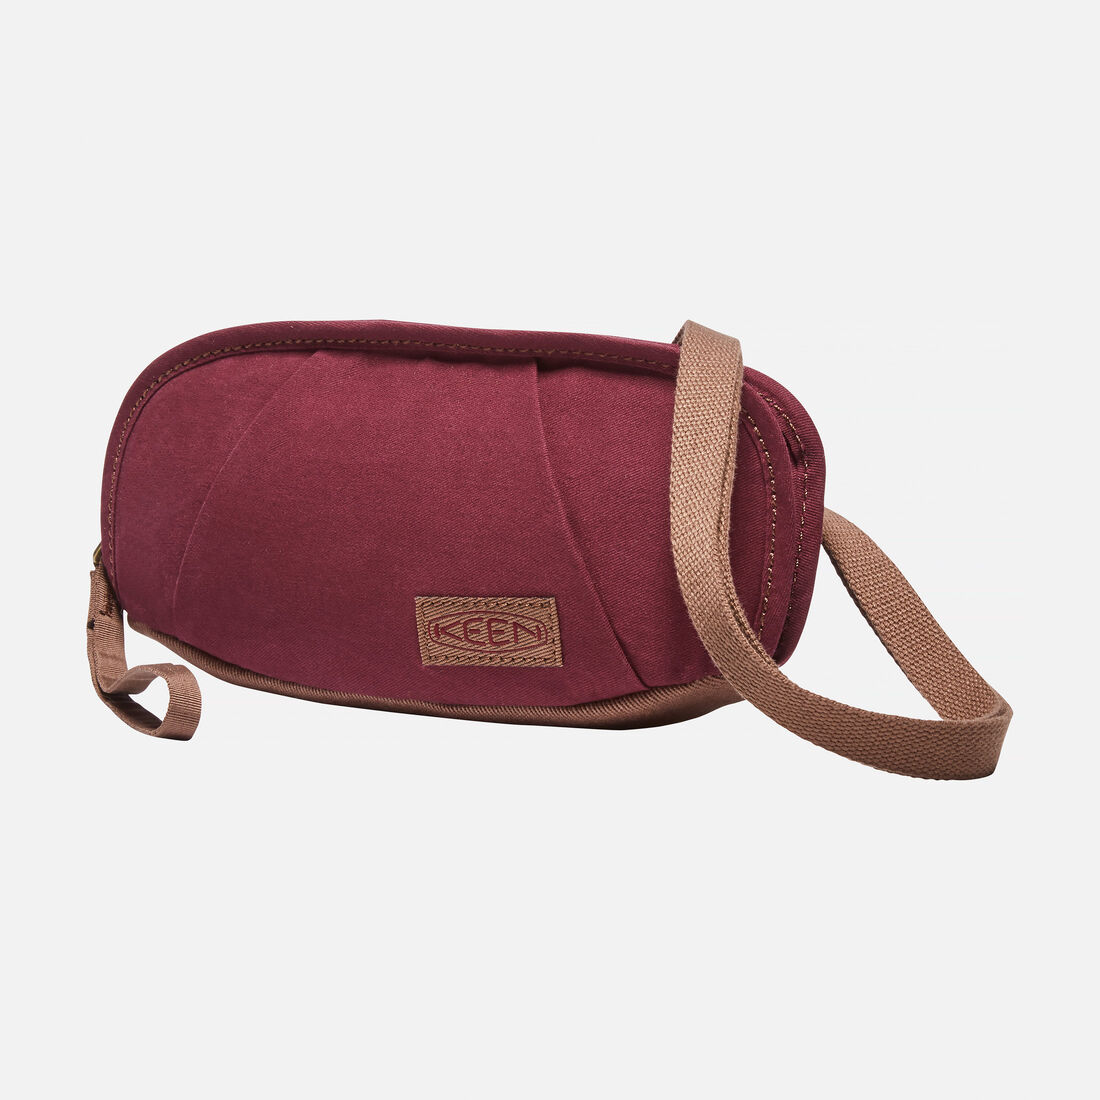 Keen Hazel Wristlet in Cienna Purple - large view.